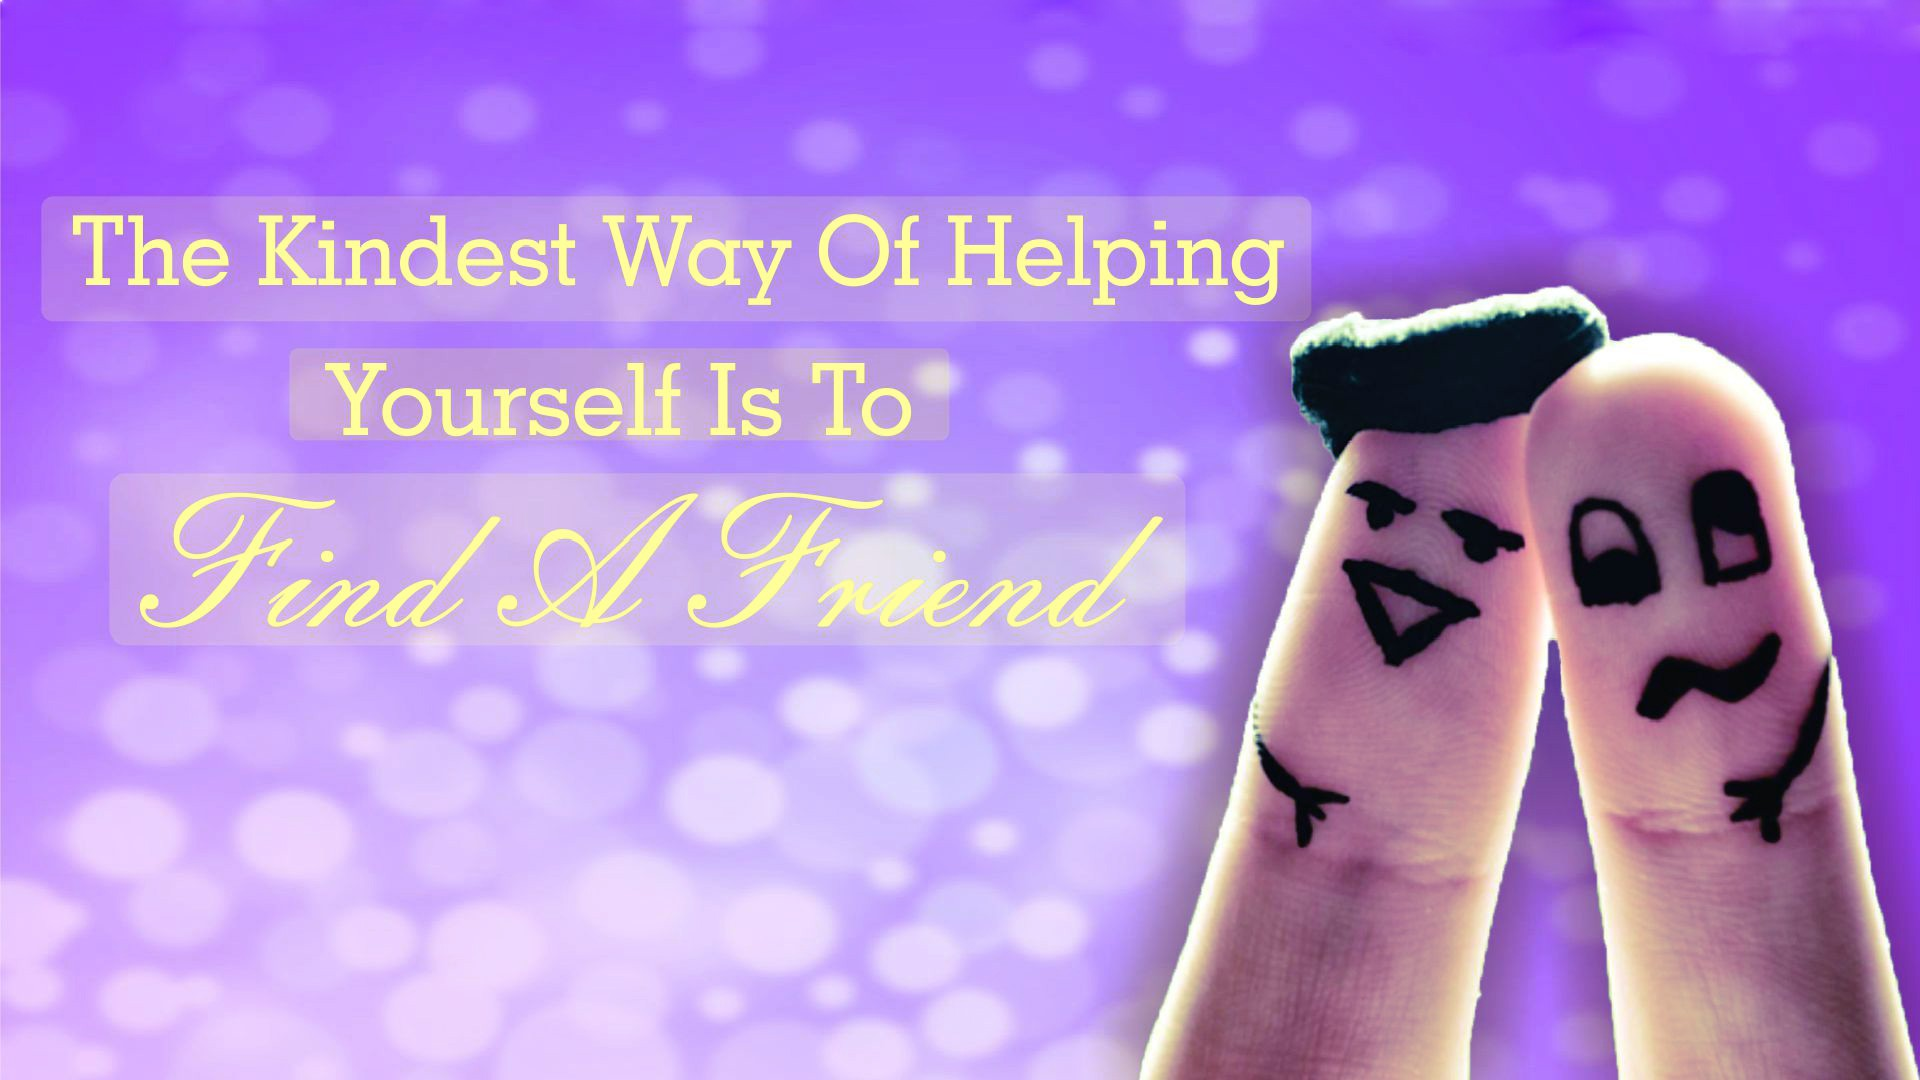 [Best] Friendship Day Whatsapp DP Images, Wallpapers 2019 ...